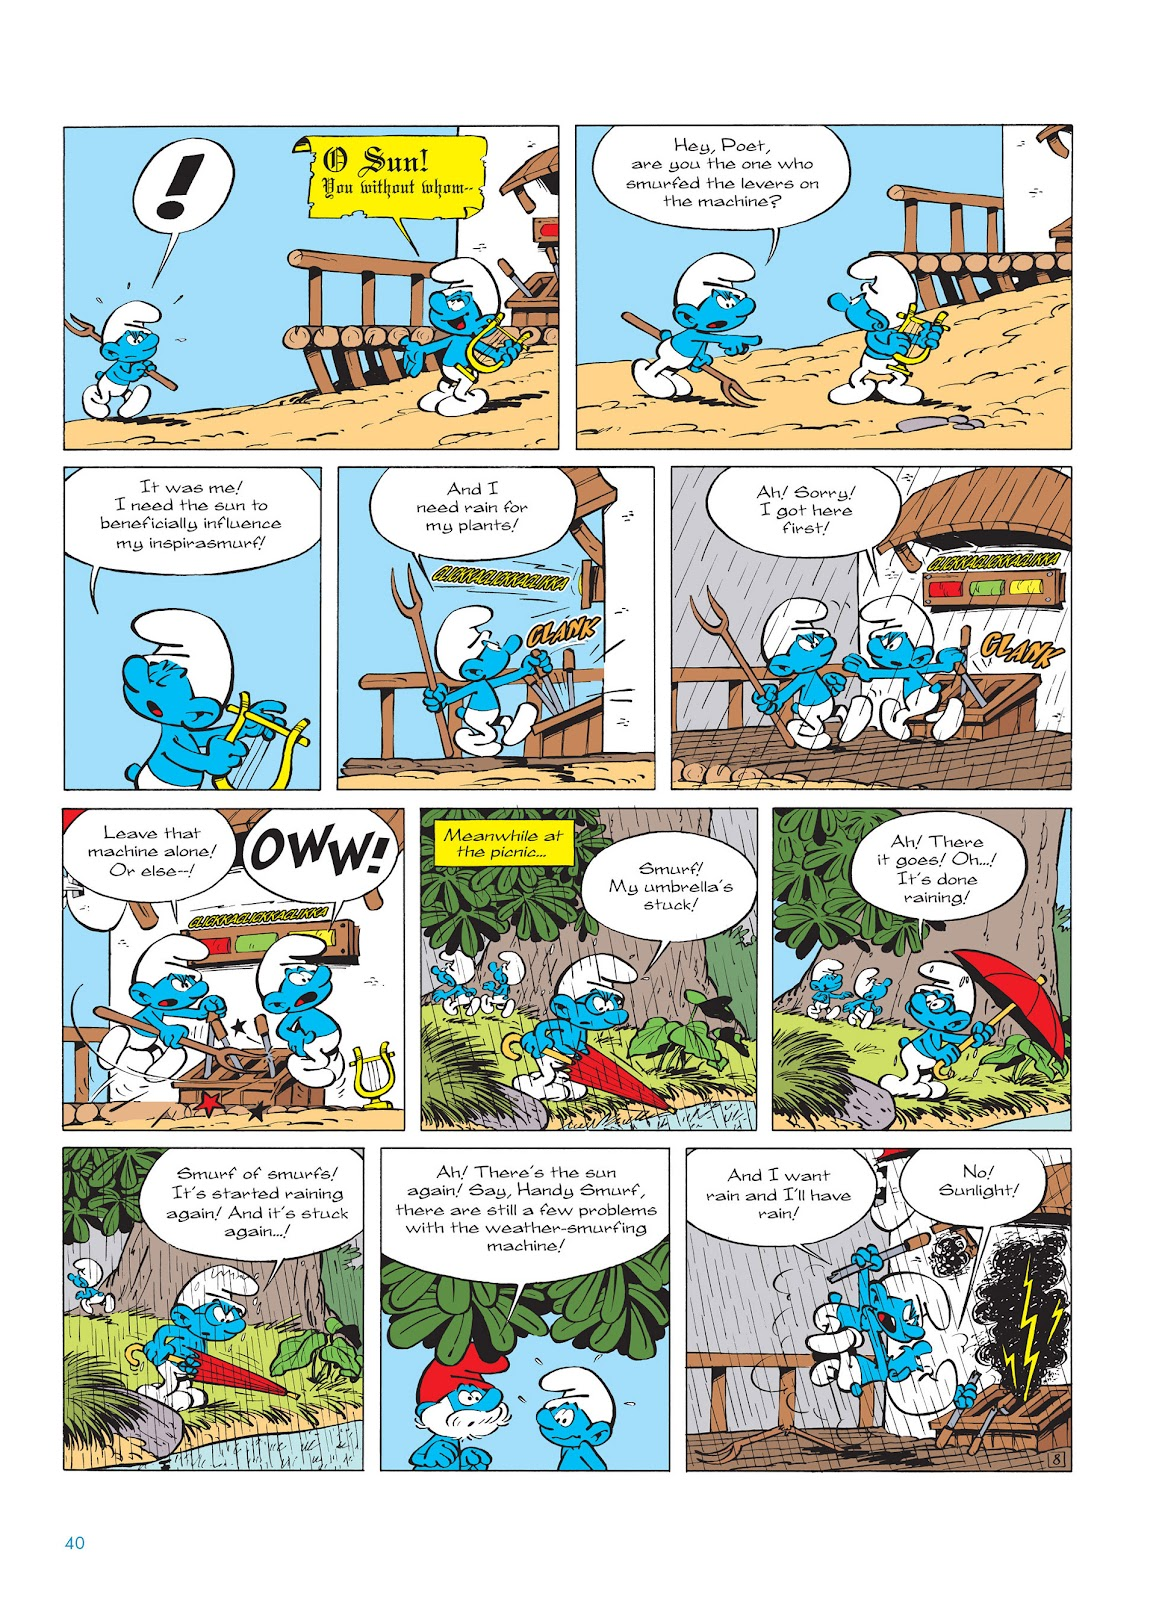 Read online The Smurfs comic -  Issue #14 - 41